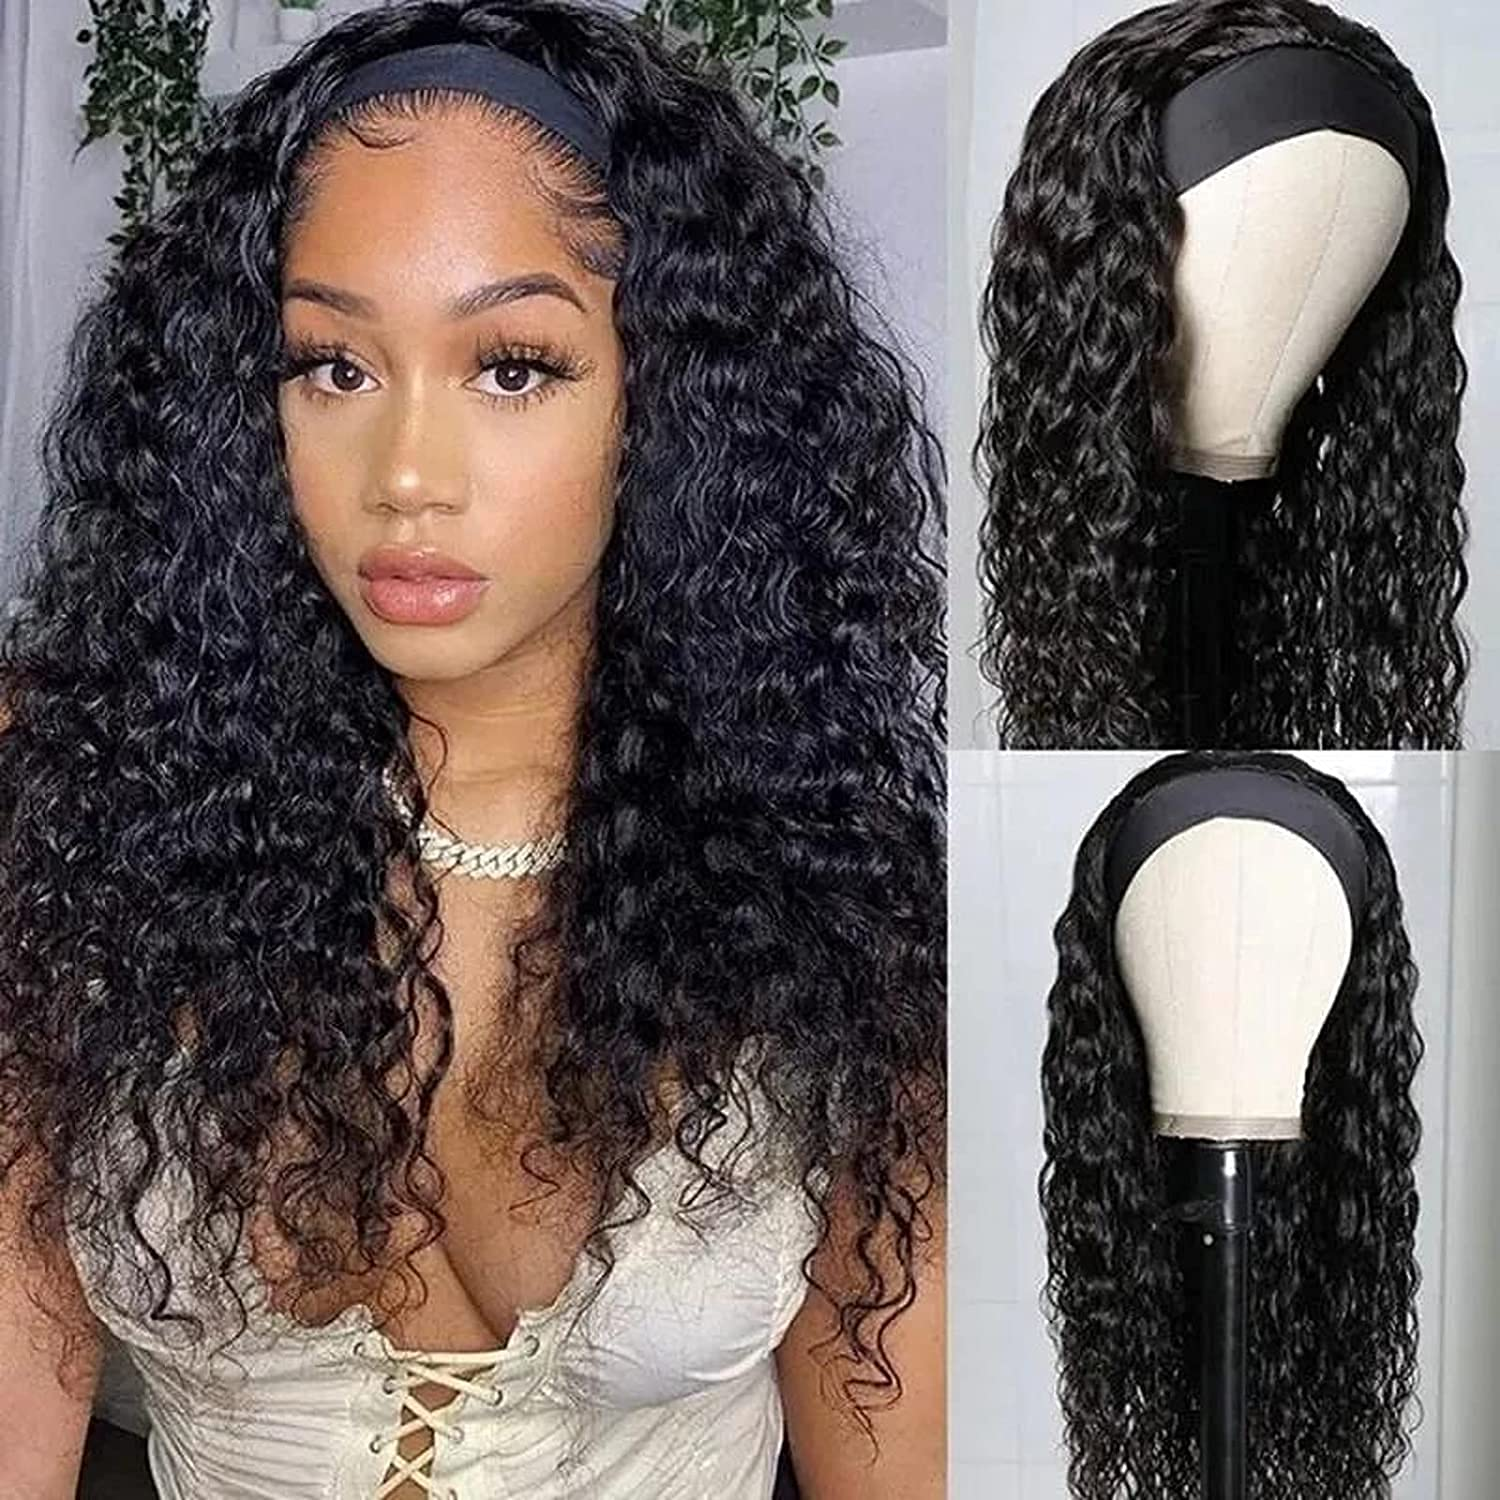 San Diego Mall Deep Wave Headband Direct store Wigs Human Hair Women Black Non Lace For